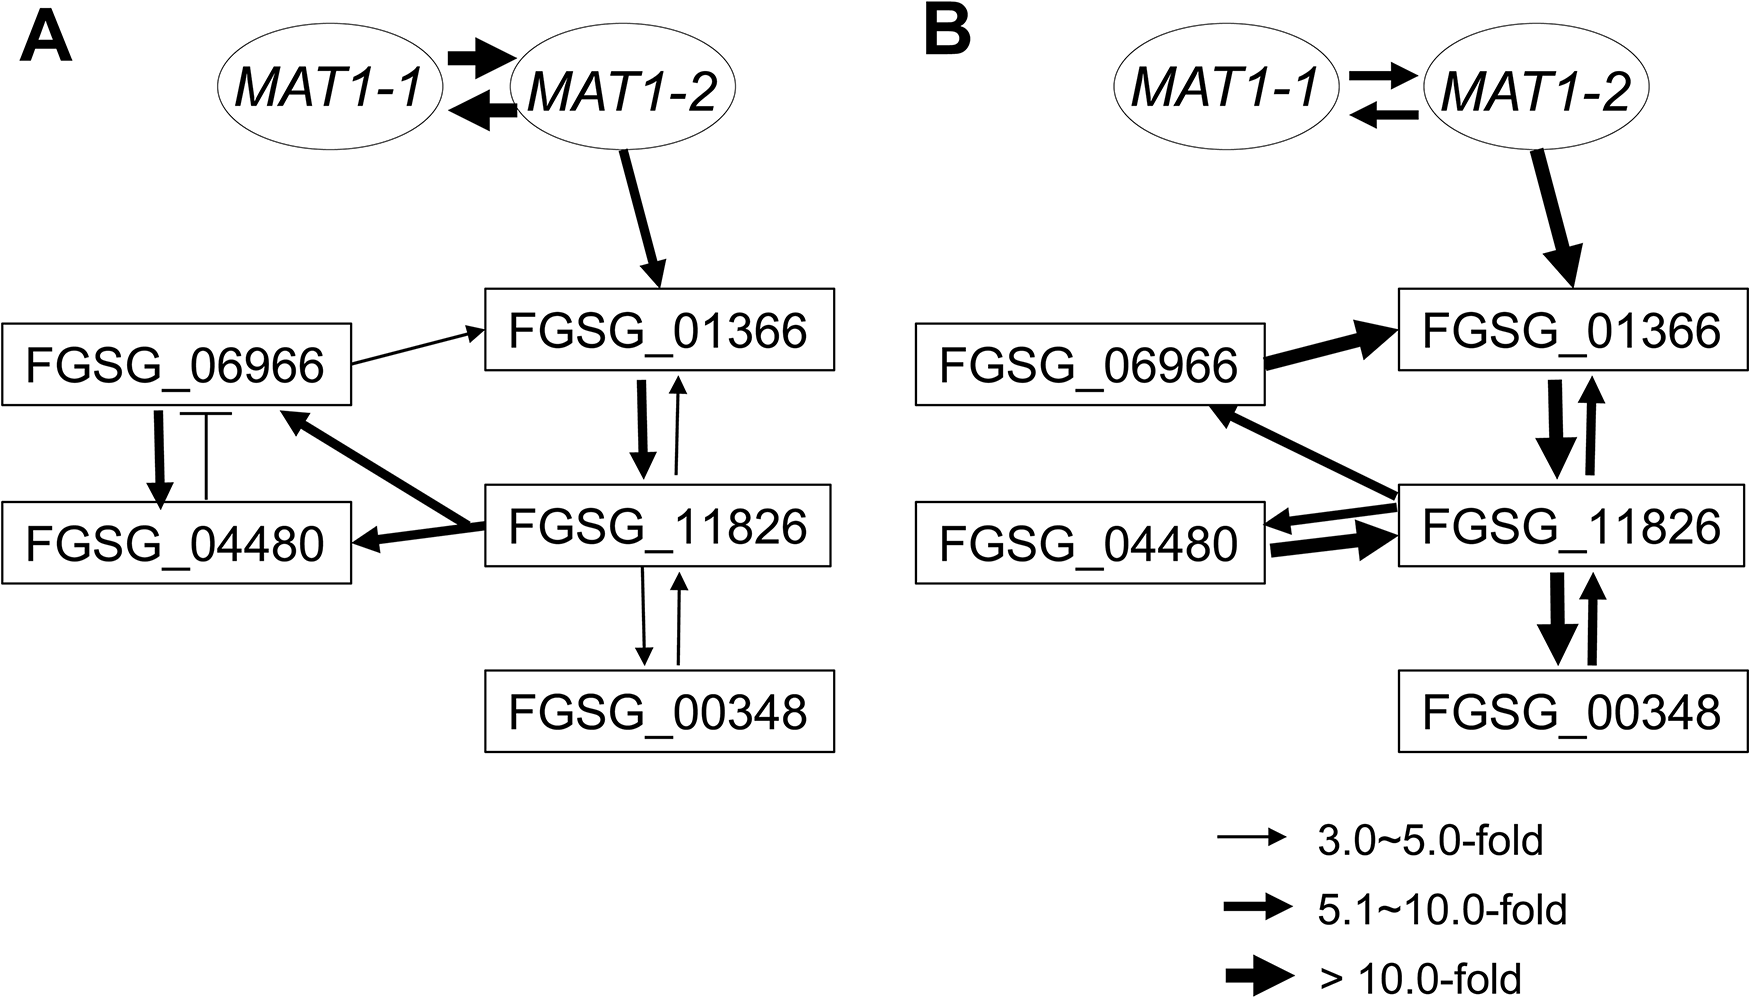 Regulatory networks among the sexual transcription factors (TFs) and an RNAi regulator (FGSG_00348) under control of the <i>MAT</i> loci during sexual development in <i>F</i>. <i>graminearum</i>.